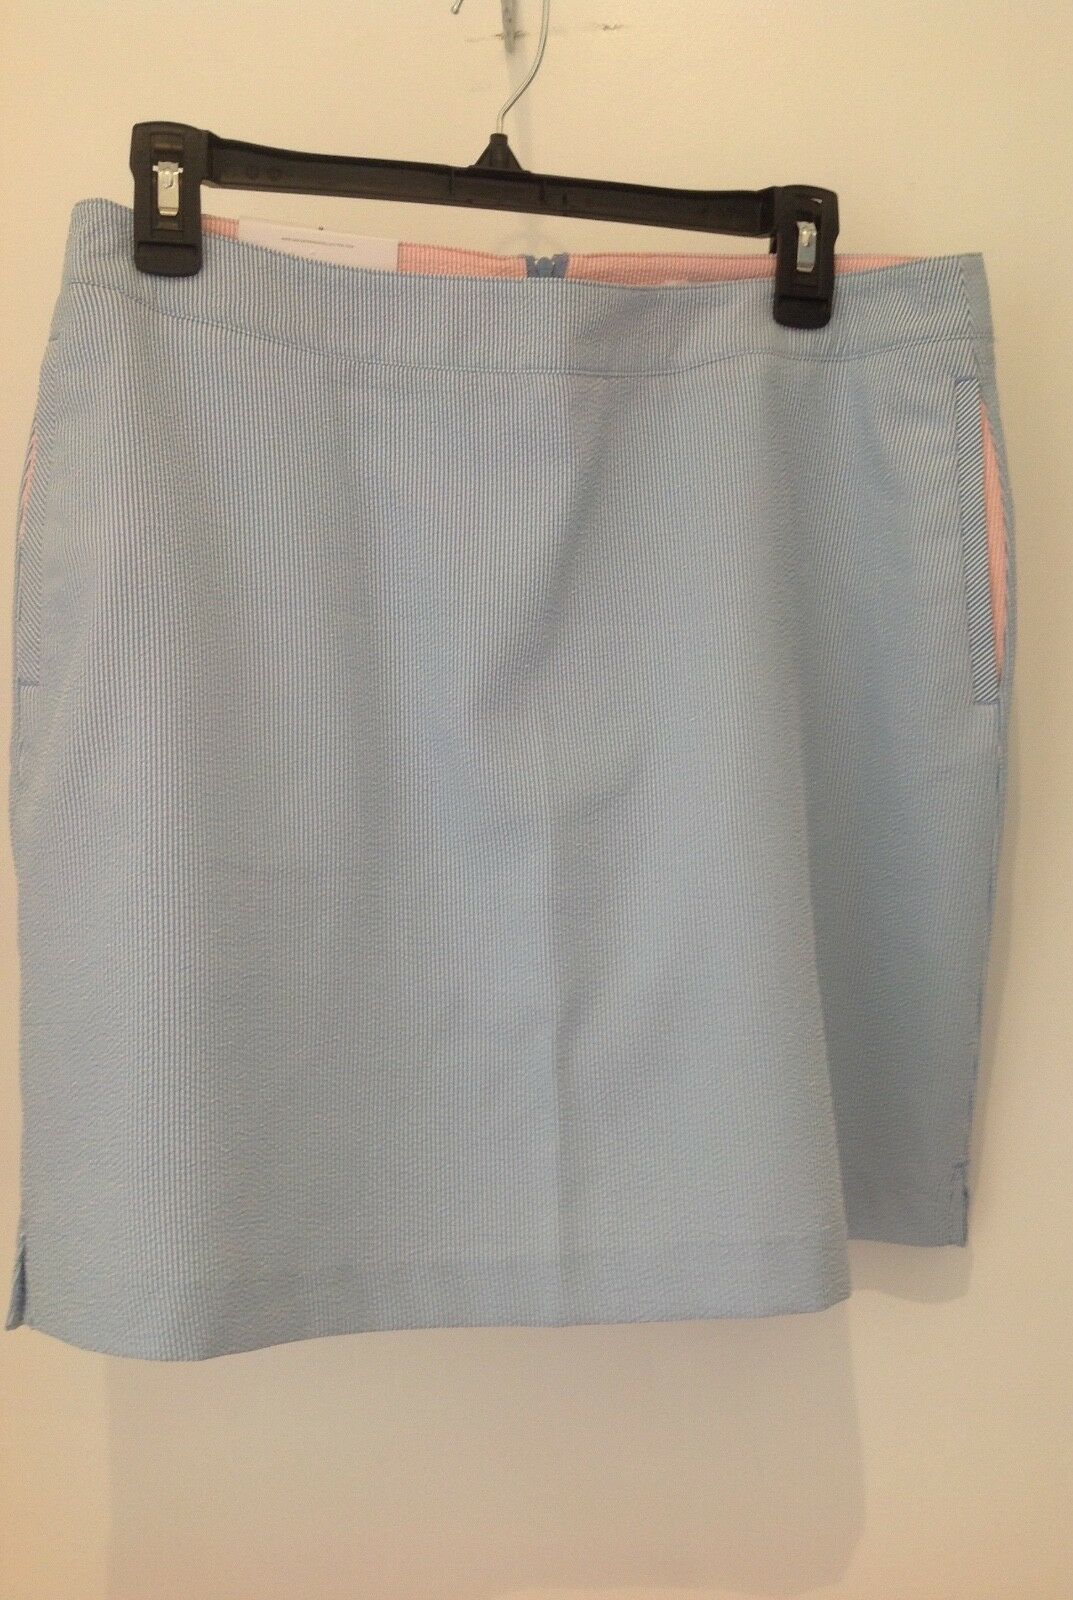 Primary image for Greg Norman Perfomance by Design Blue  Tennis Golf Club Skirt Skorts Size 8 NWT